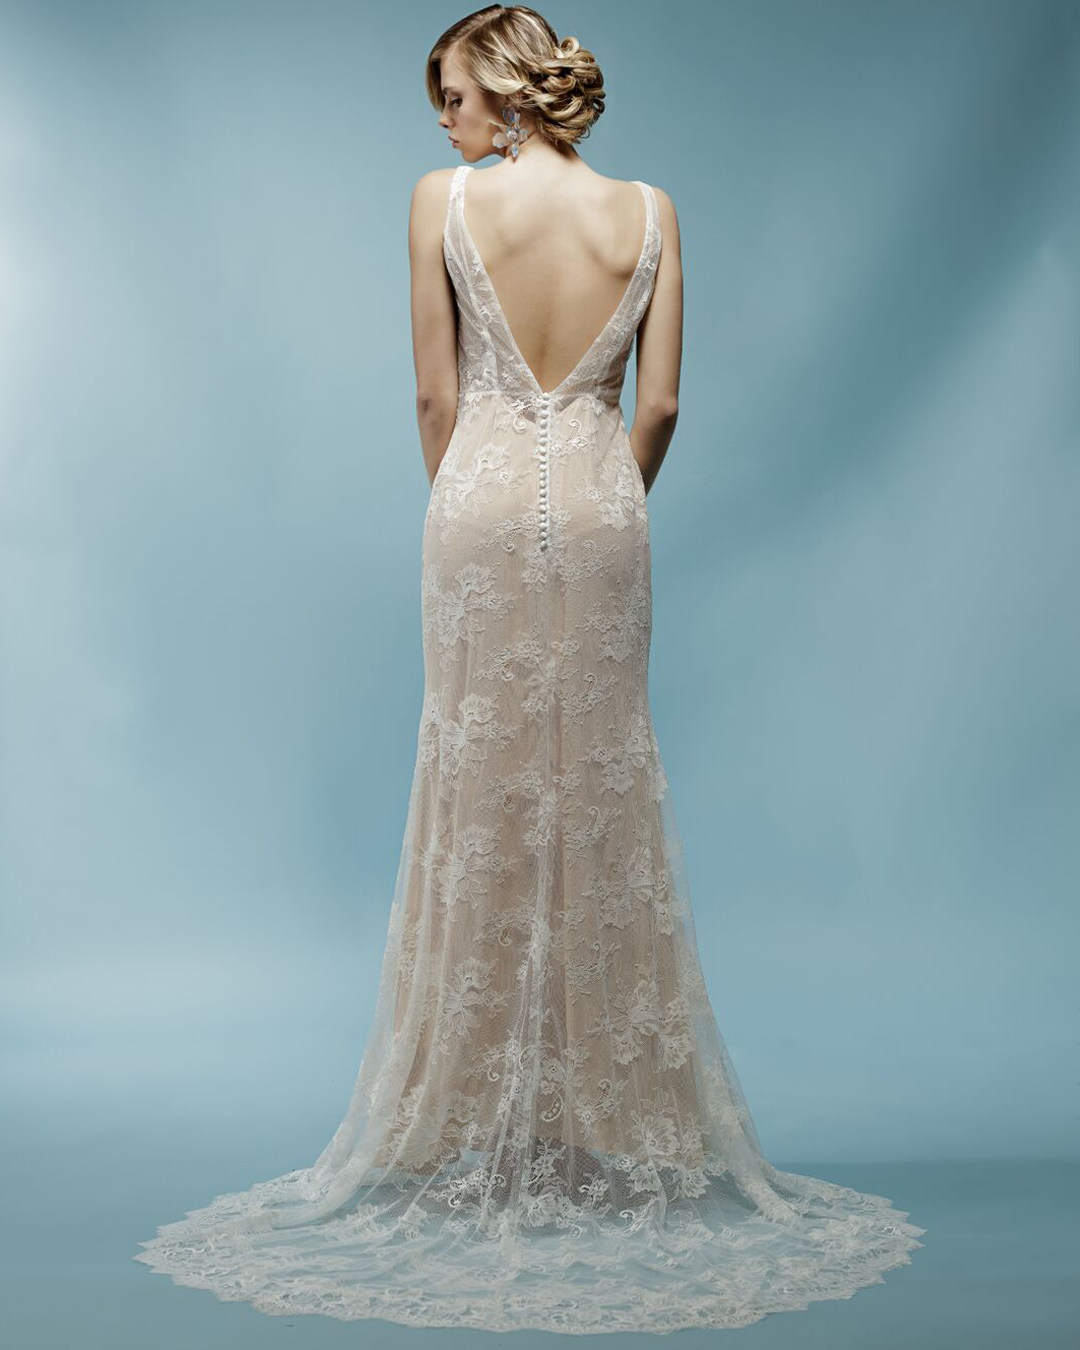 Jacqueline, Spring 2018 collection | nude lace wedding dress | Ivy ...